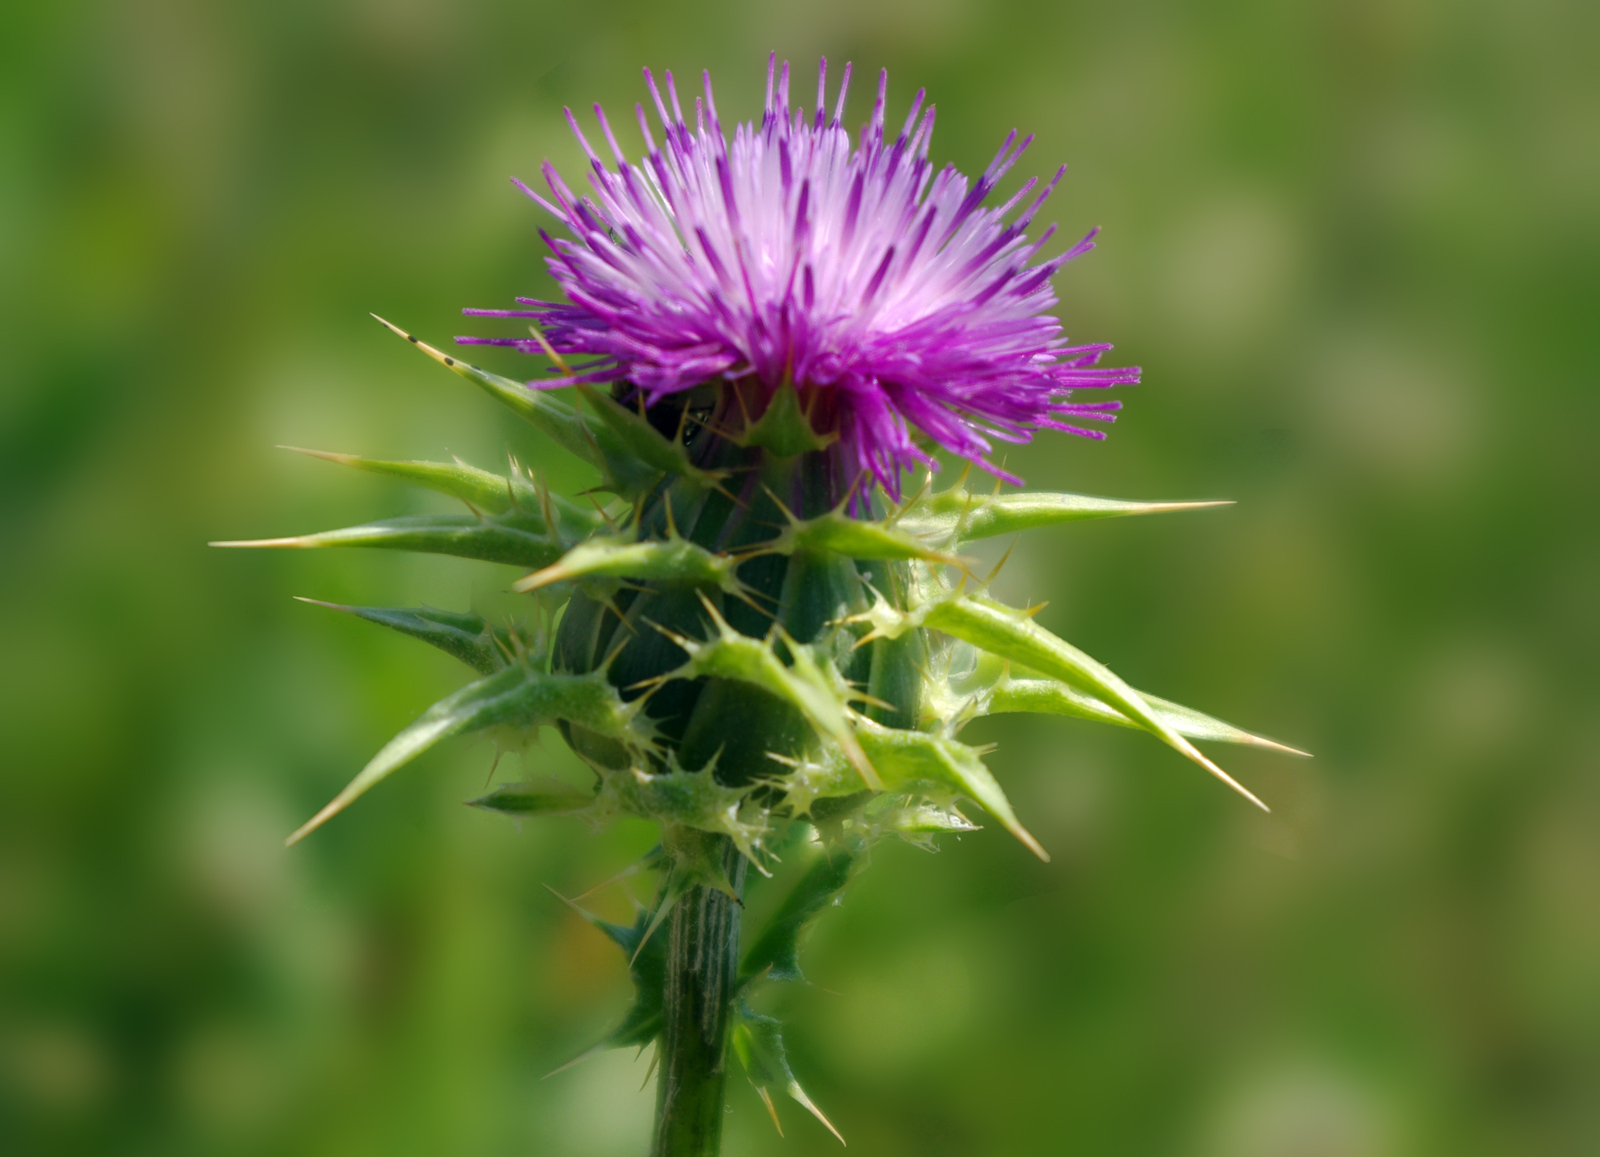 Milk Thistle Extract Has Shown Extremely Promising Activity Against Human Liver Cancer 38